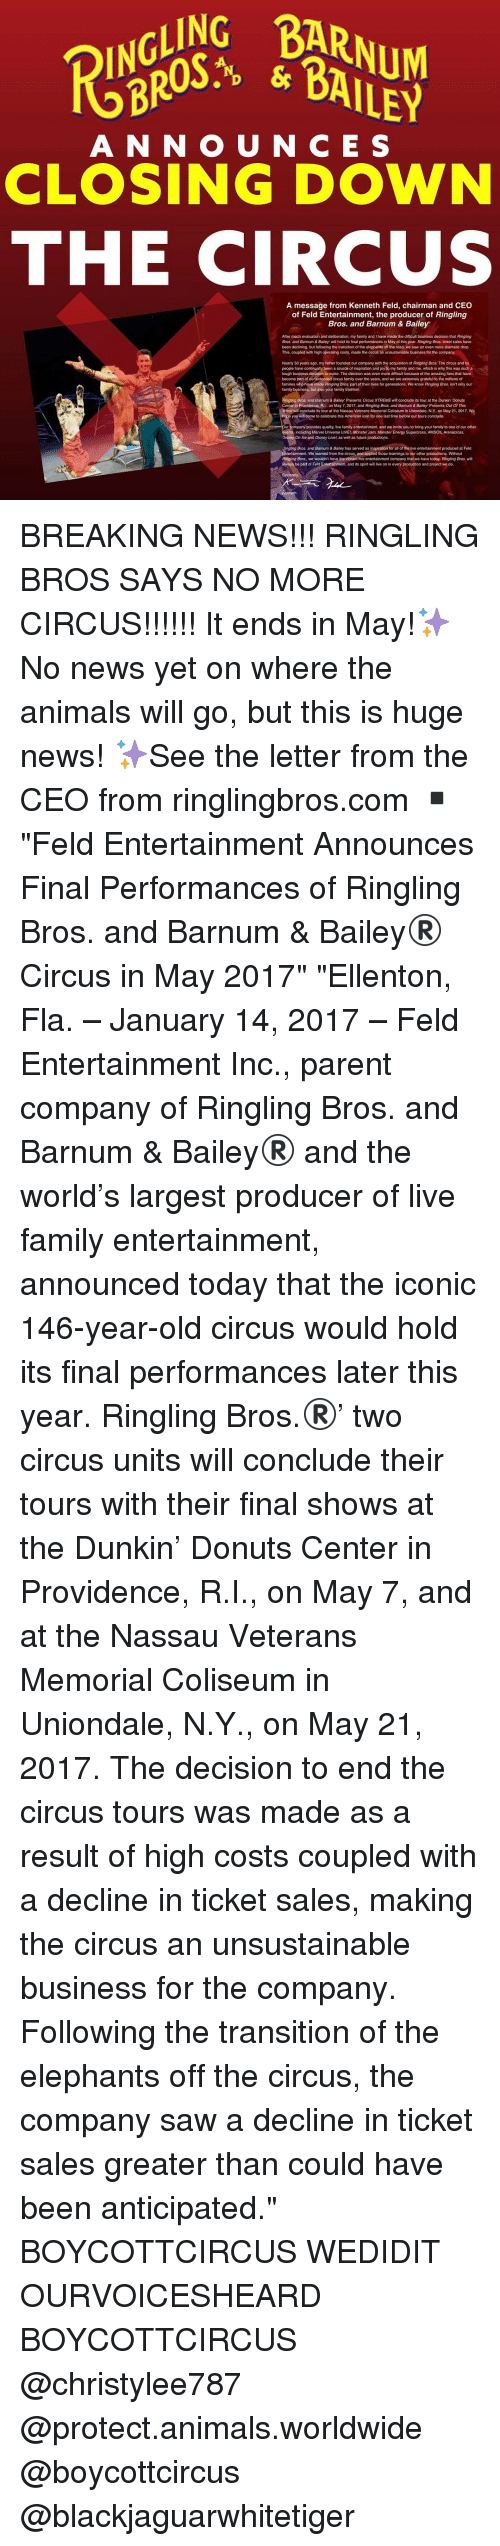 Disney, Memes, and Monster: A N N O U N C E S  CLOSING DOWN  THE CIRCUS  A message from Kenneth Feld, chairman and CEO  of Feld Entertainment, the producer of Ringling  Bros. and Barnum & Bailey  After much evaluation and deliberation, my family and I have made the difficult business decision that Ringing  Bros. and Bamum & Bailey will hold its final performances in May of this year. Ringing Bros. ticket sales have  been declining, but following the transition of the elephants off the road, we saw an even more dramatic drop.  This, coupled with high operating costs, made the circus an unsustainable business for the company.  Nearly 50 years ago, my father founded our company with the acquisition of Ringling Bros The circus and its  people have continually been a source of inspiration and joy to my family and me, which is why this  was such a  tough business decision to make. The decision was  even more difficult because of the amazing fans that have  become part of our extended circus famity over the years, and we are extremely grateful to the millions of  familes who have made Ringling Bros part of their lives for generations. We know Ringling Bros. isn't cnly our  family business, but also your family tradition.  ng Bros. and Barnum & Bailey Presents Circus XTREME wil conclude its tour at the Dunkin' Donuts  Center in Providence, RIL, on May 7, 2017, and Ringling Bros. and Barnum & Bailey Presents out of This  World will conclude its tour at the Nassau Veterans Memorial Coliseum in Uniondale, NY, on May 21, 2017, We  you wa come to celebrate this American icon for  one last time before our tours conclude.  r company provides quality, live family entertainment, and we invite you to bring your family to one of our other  ents, including Marvel Universe LIVE!. Monster Jam, Monster Energy Supercross, AMSOIL Arenactoss,  Disney On Ice and Disney Live  as well as future productions.  or all of  live entertainment produced at Feld  tertainment. We learned from the circus